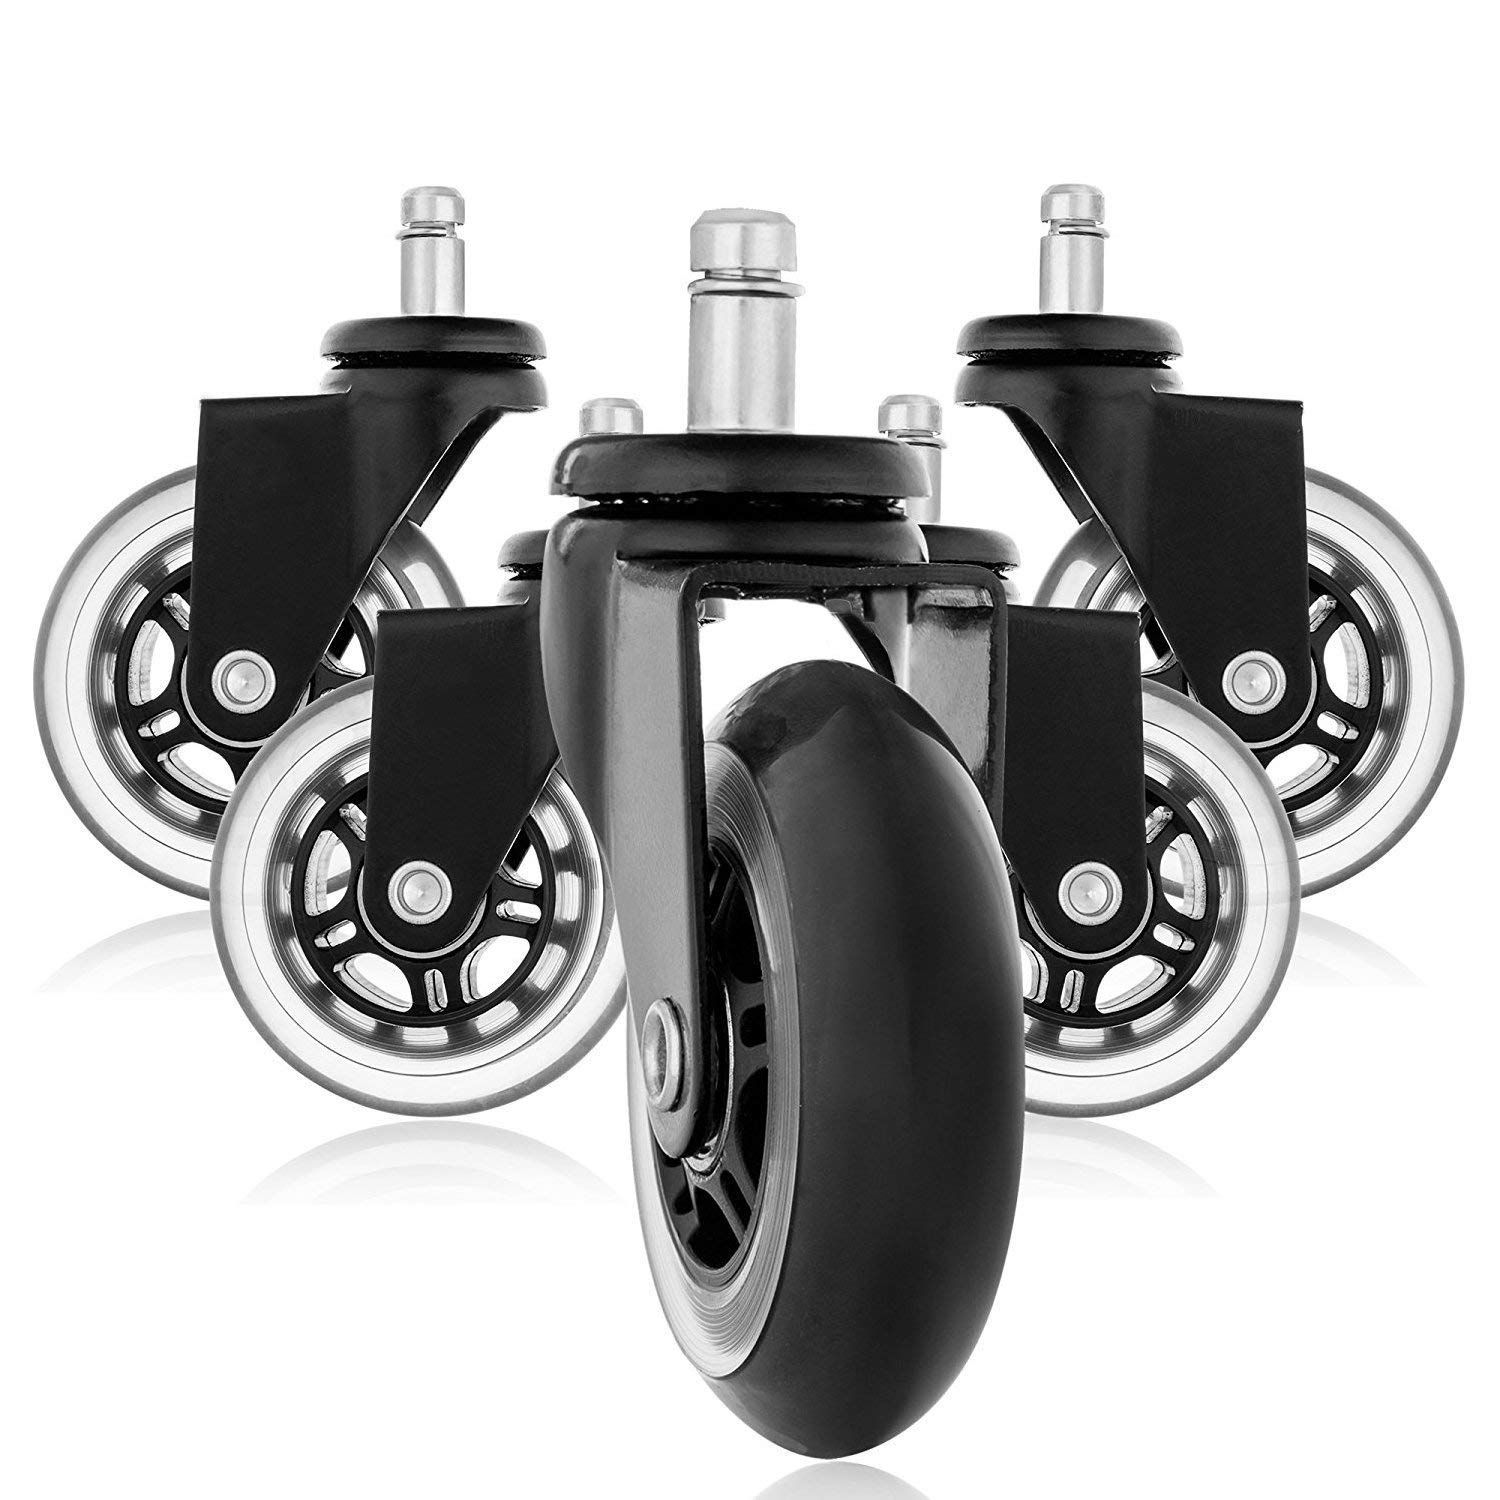 Brand New Replacement Wheels, Office Chair Caster Wheels for Your Desk Chair, Quiet Rolling Casters Perfect for Hardwood Floors,Brand New Replacement Wheels, Office Chair Caster Wheels for Your Desk Chair, Quiet Rolling Casters Perfect for Hardwood Floors,